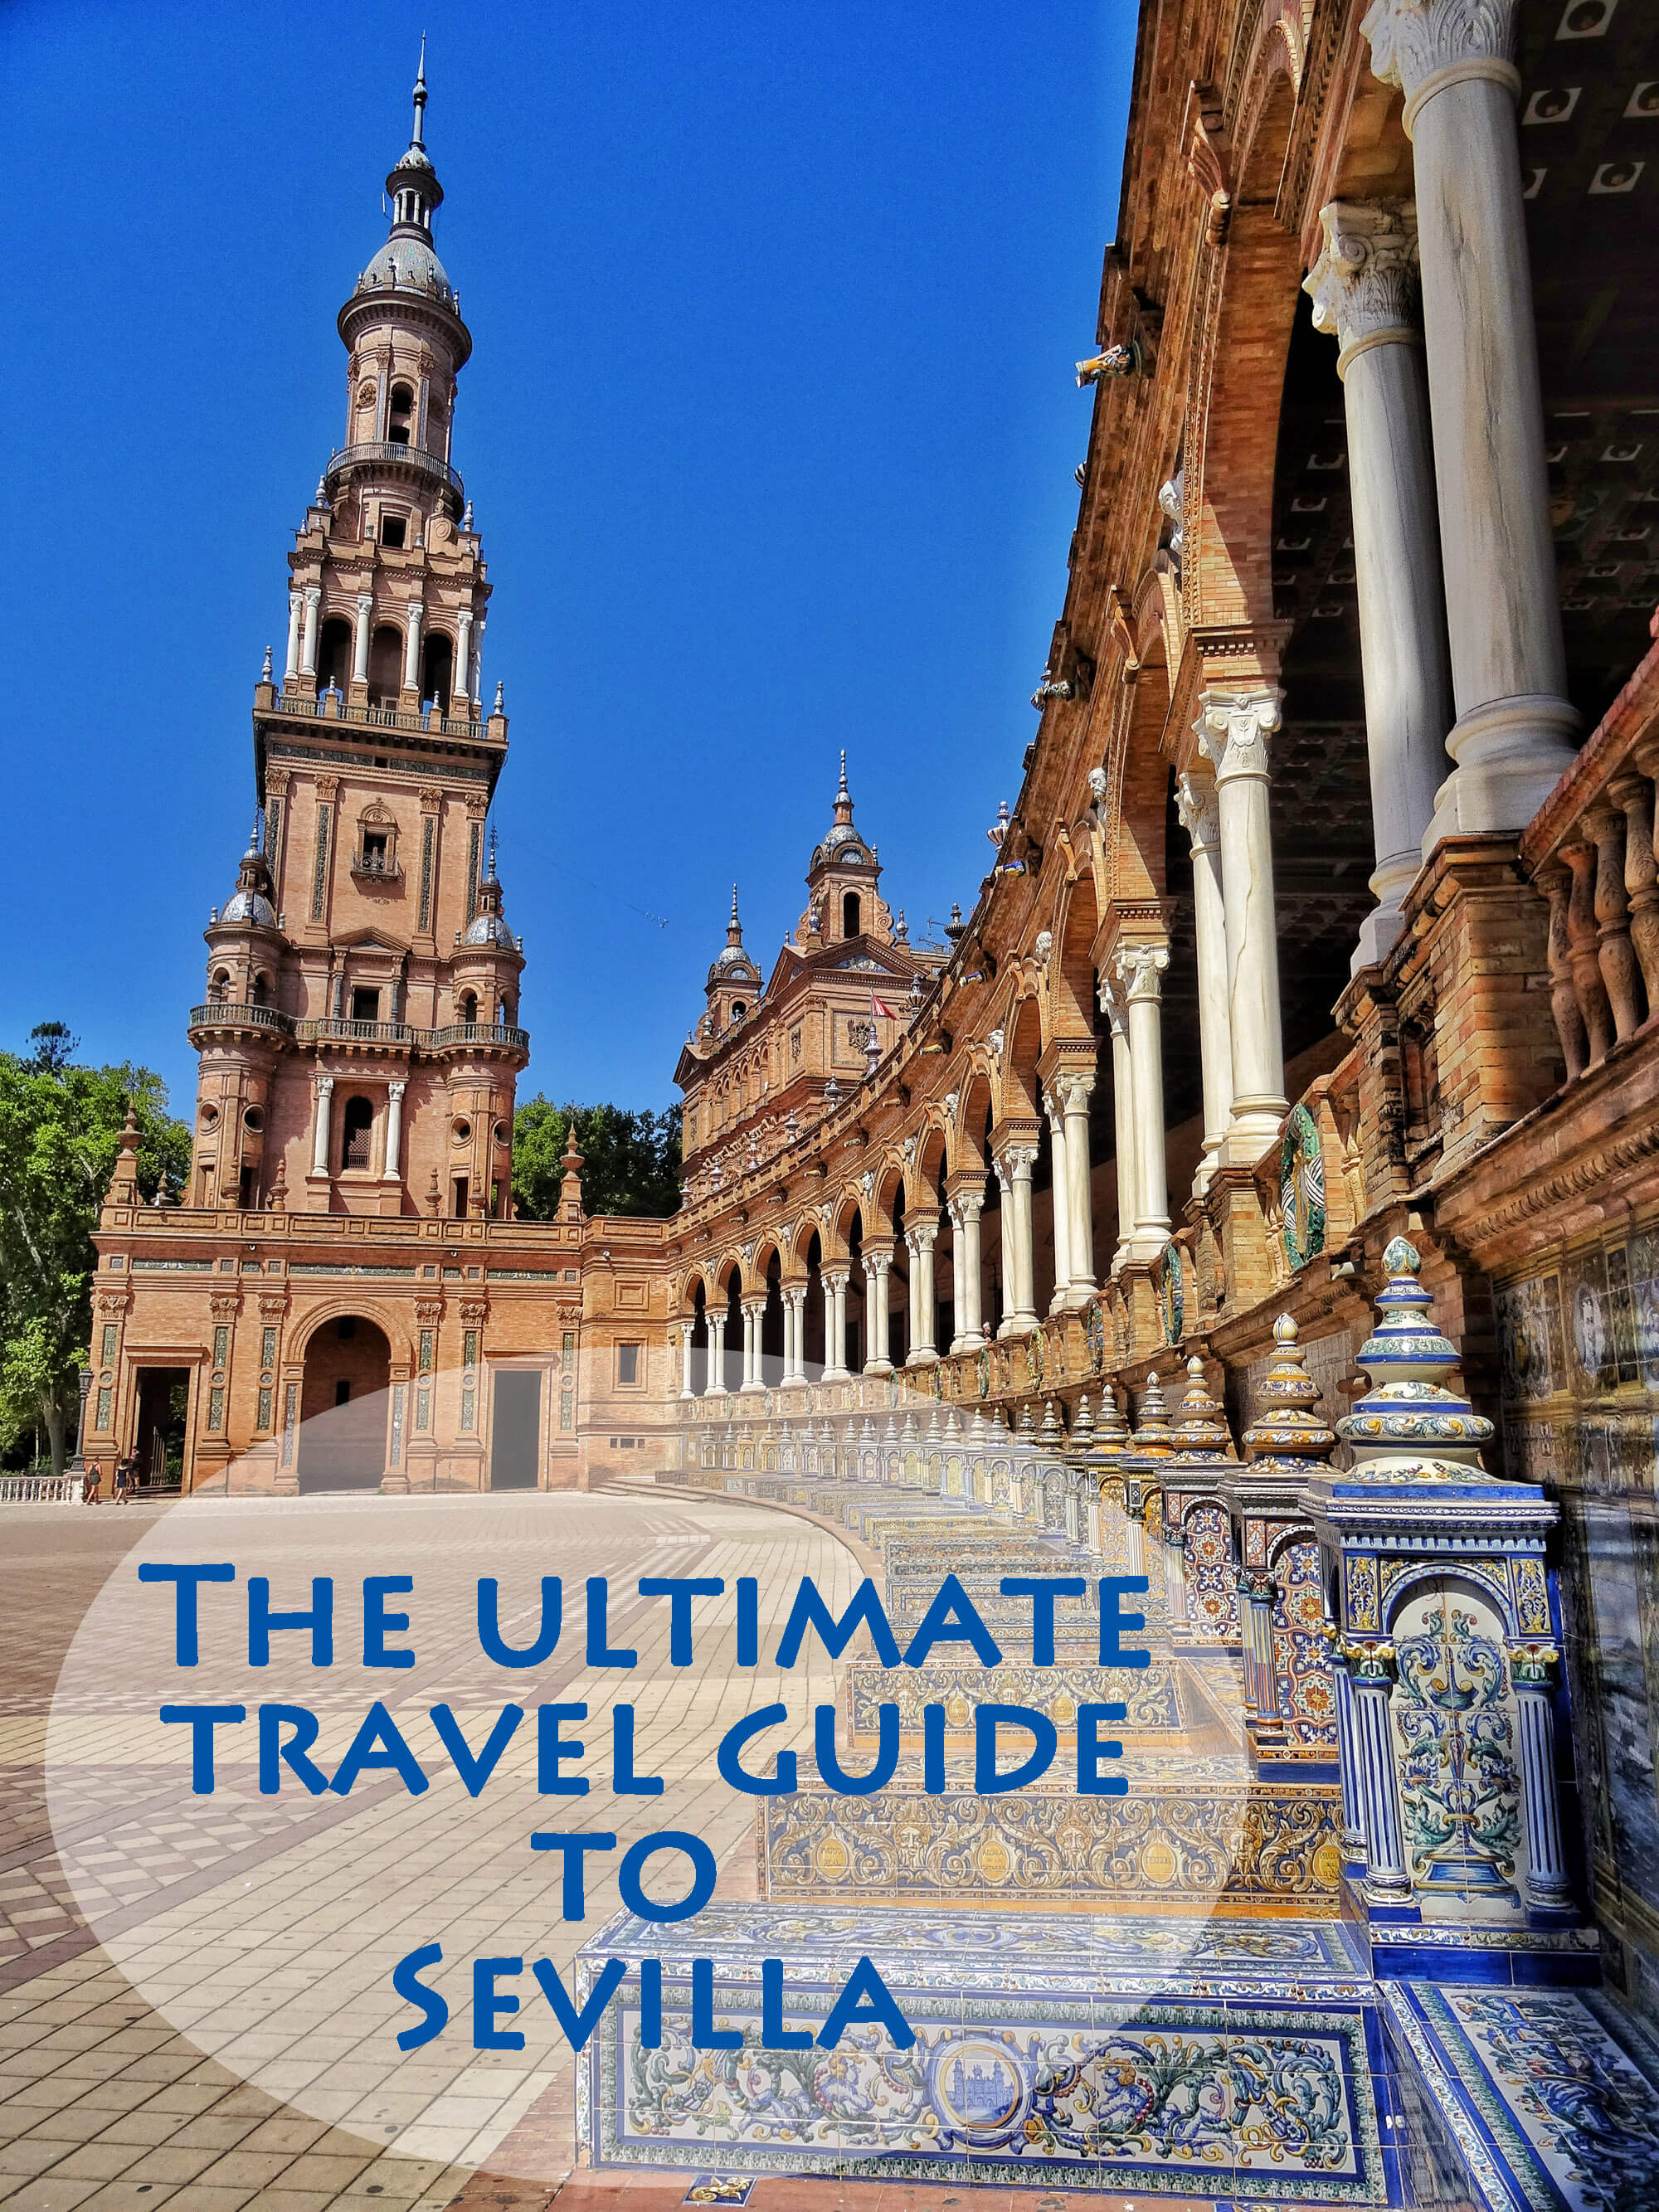 Sevilla the ultimate travel guide world wanderista - Zara sevilla centro ...